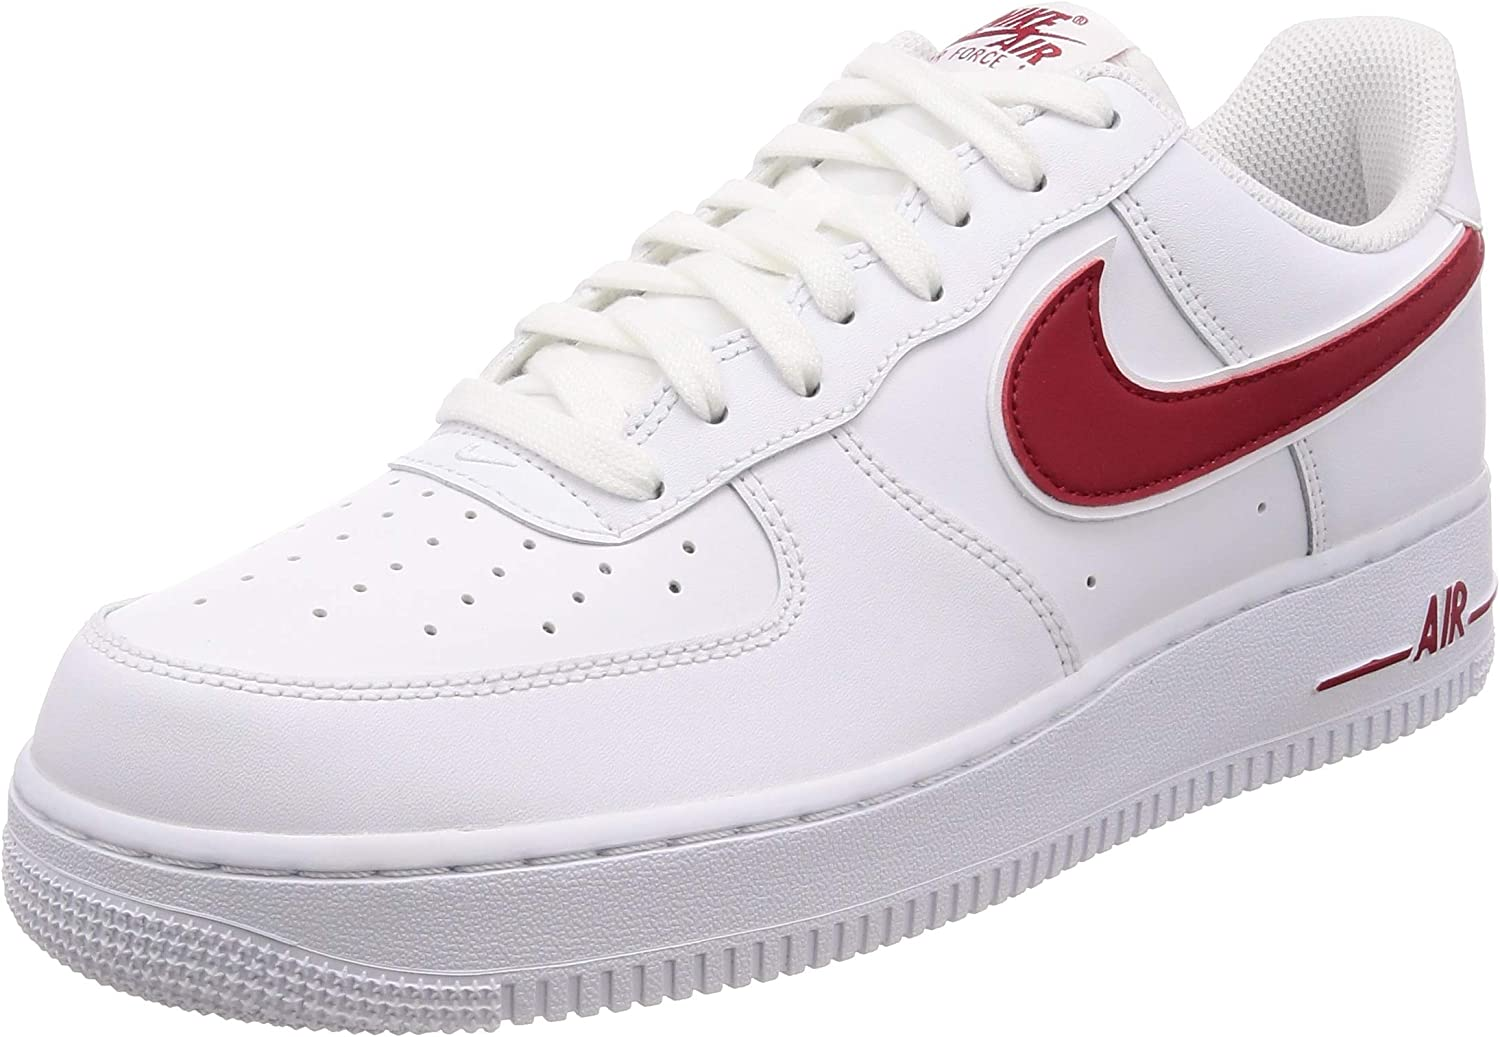 Scarpe e sneaker da uomo Nike Air Force 1 '07 3 White Gym Red